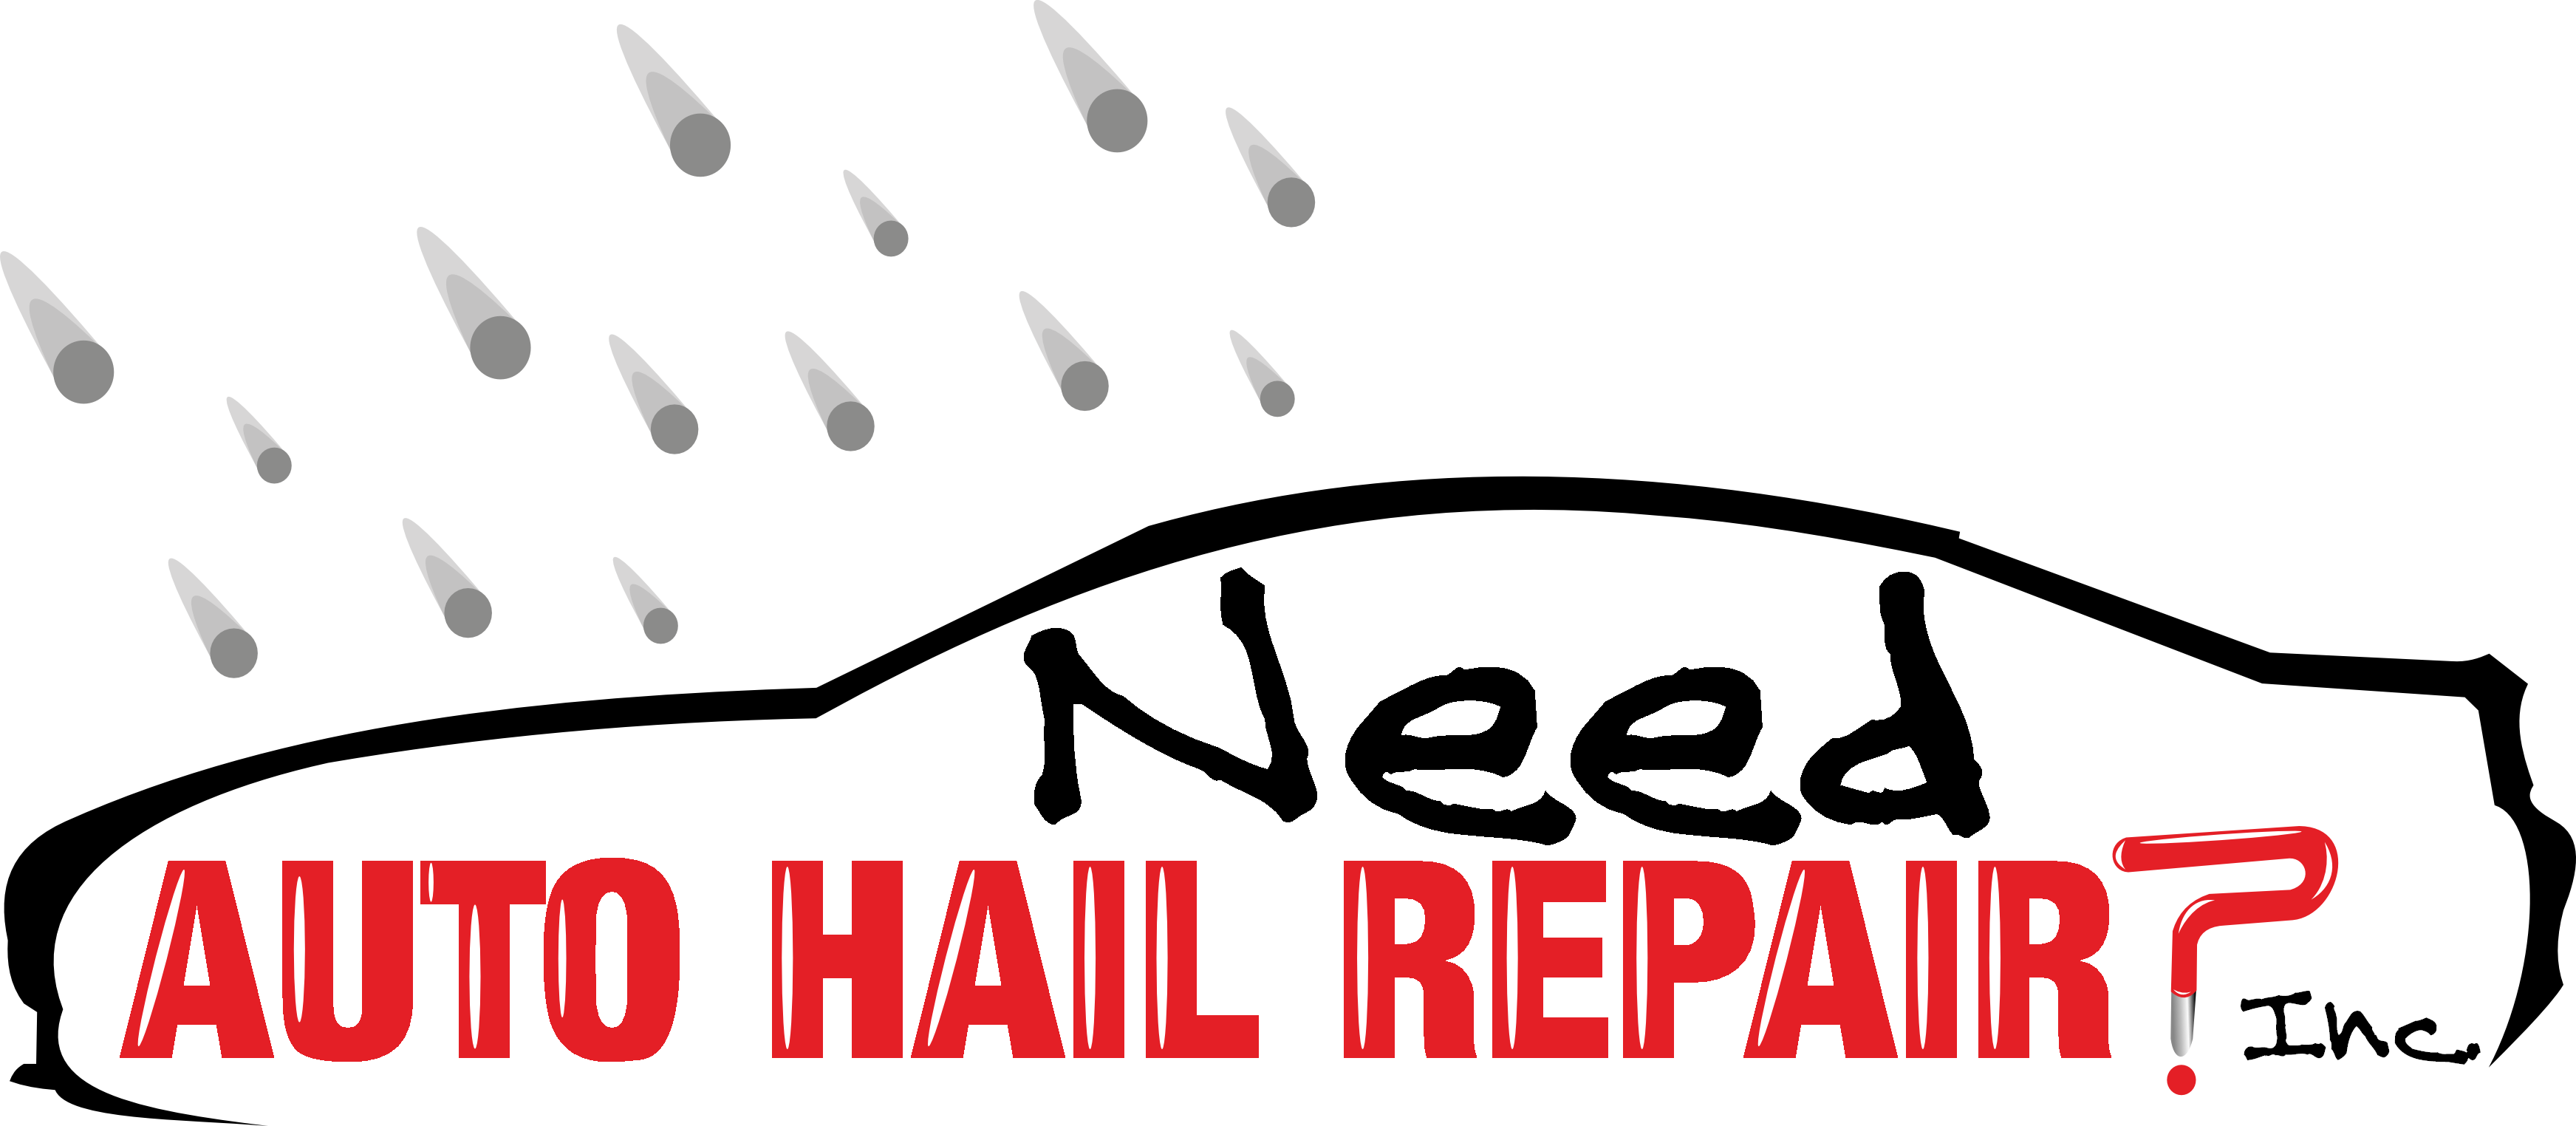 Need Auto Hail Repair ?